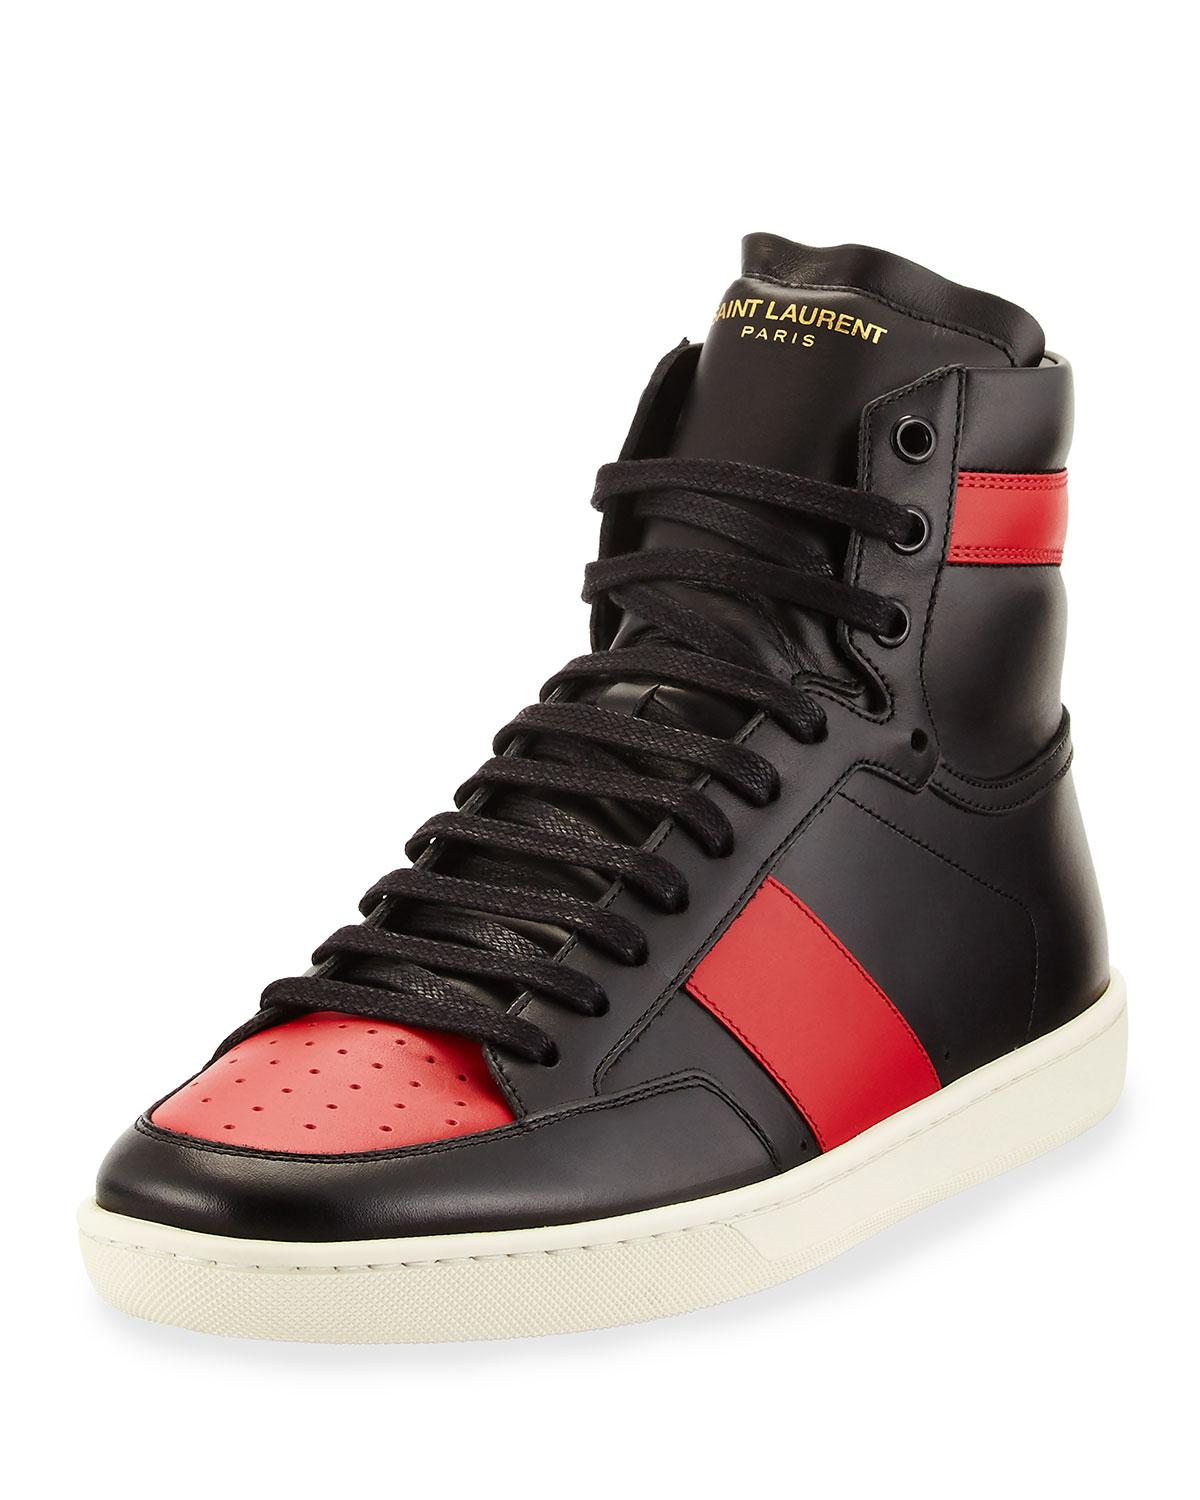 Saint Laurent Two-Toned Leather High